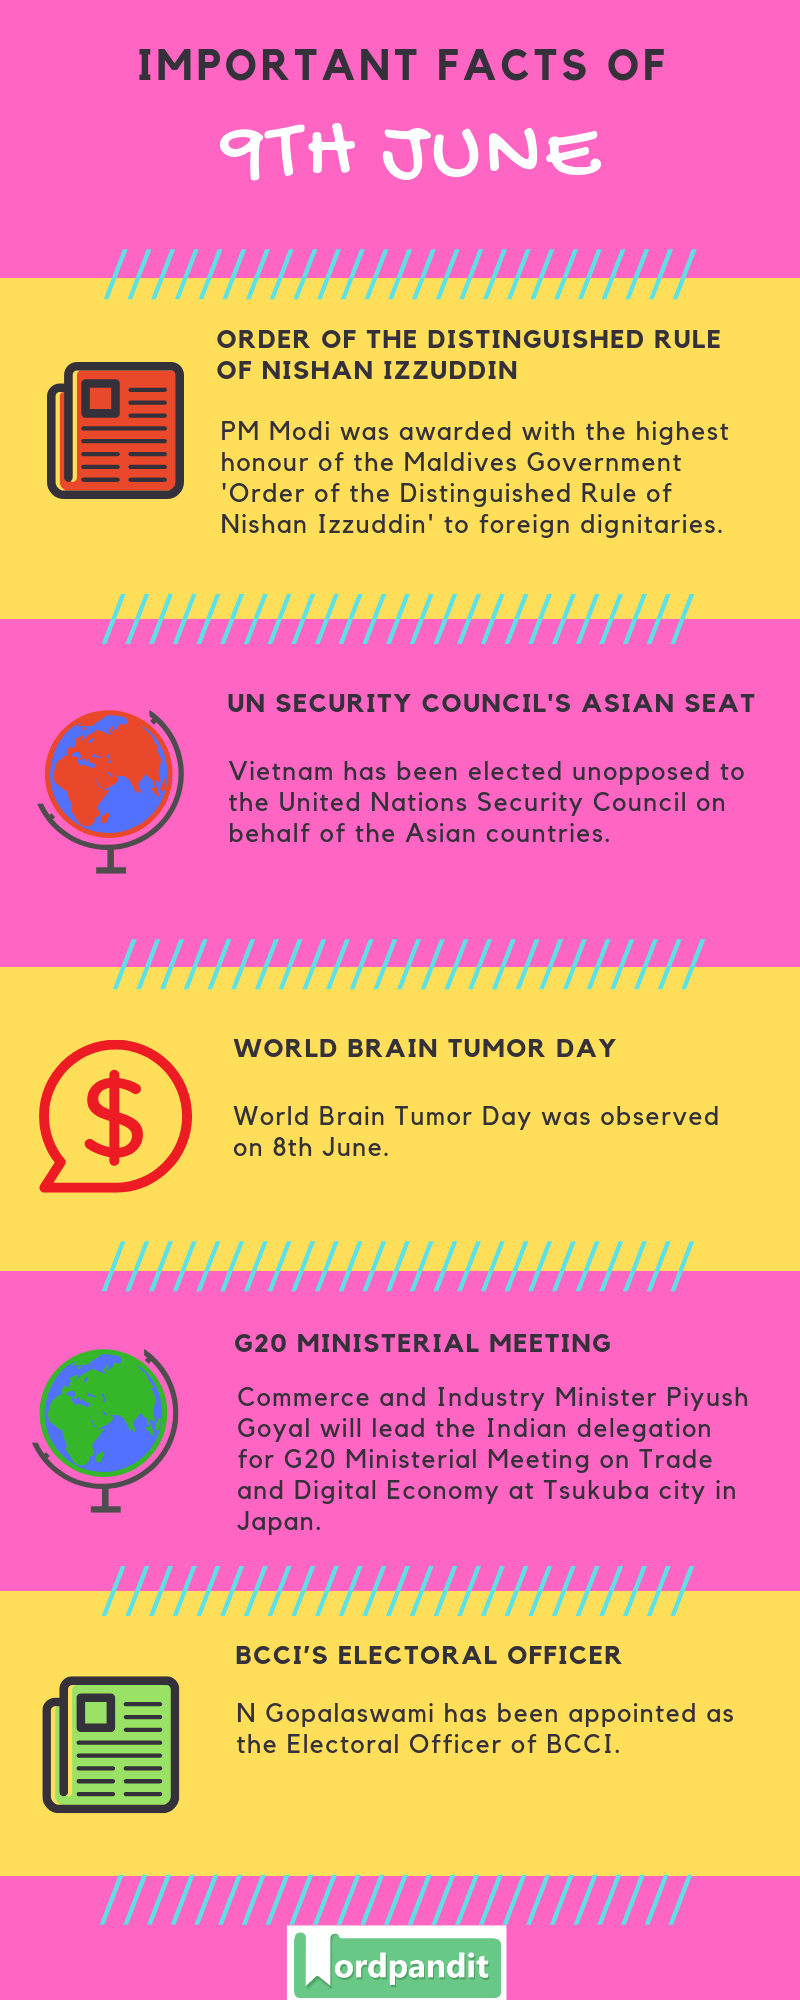 Daily Current Affairs 9 June 2019 Current Affairs Quiz 9 June 2019 Current Affairs Infographic